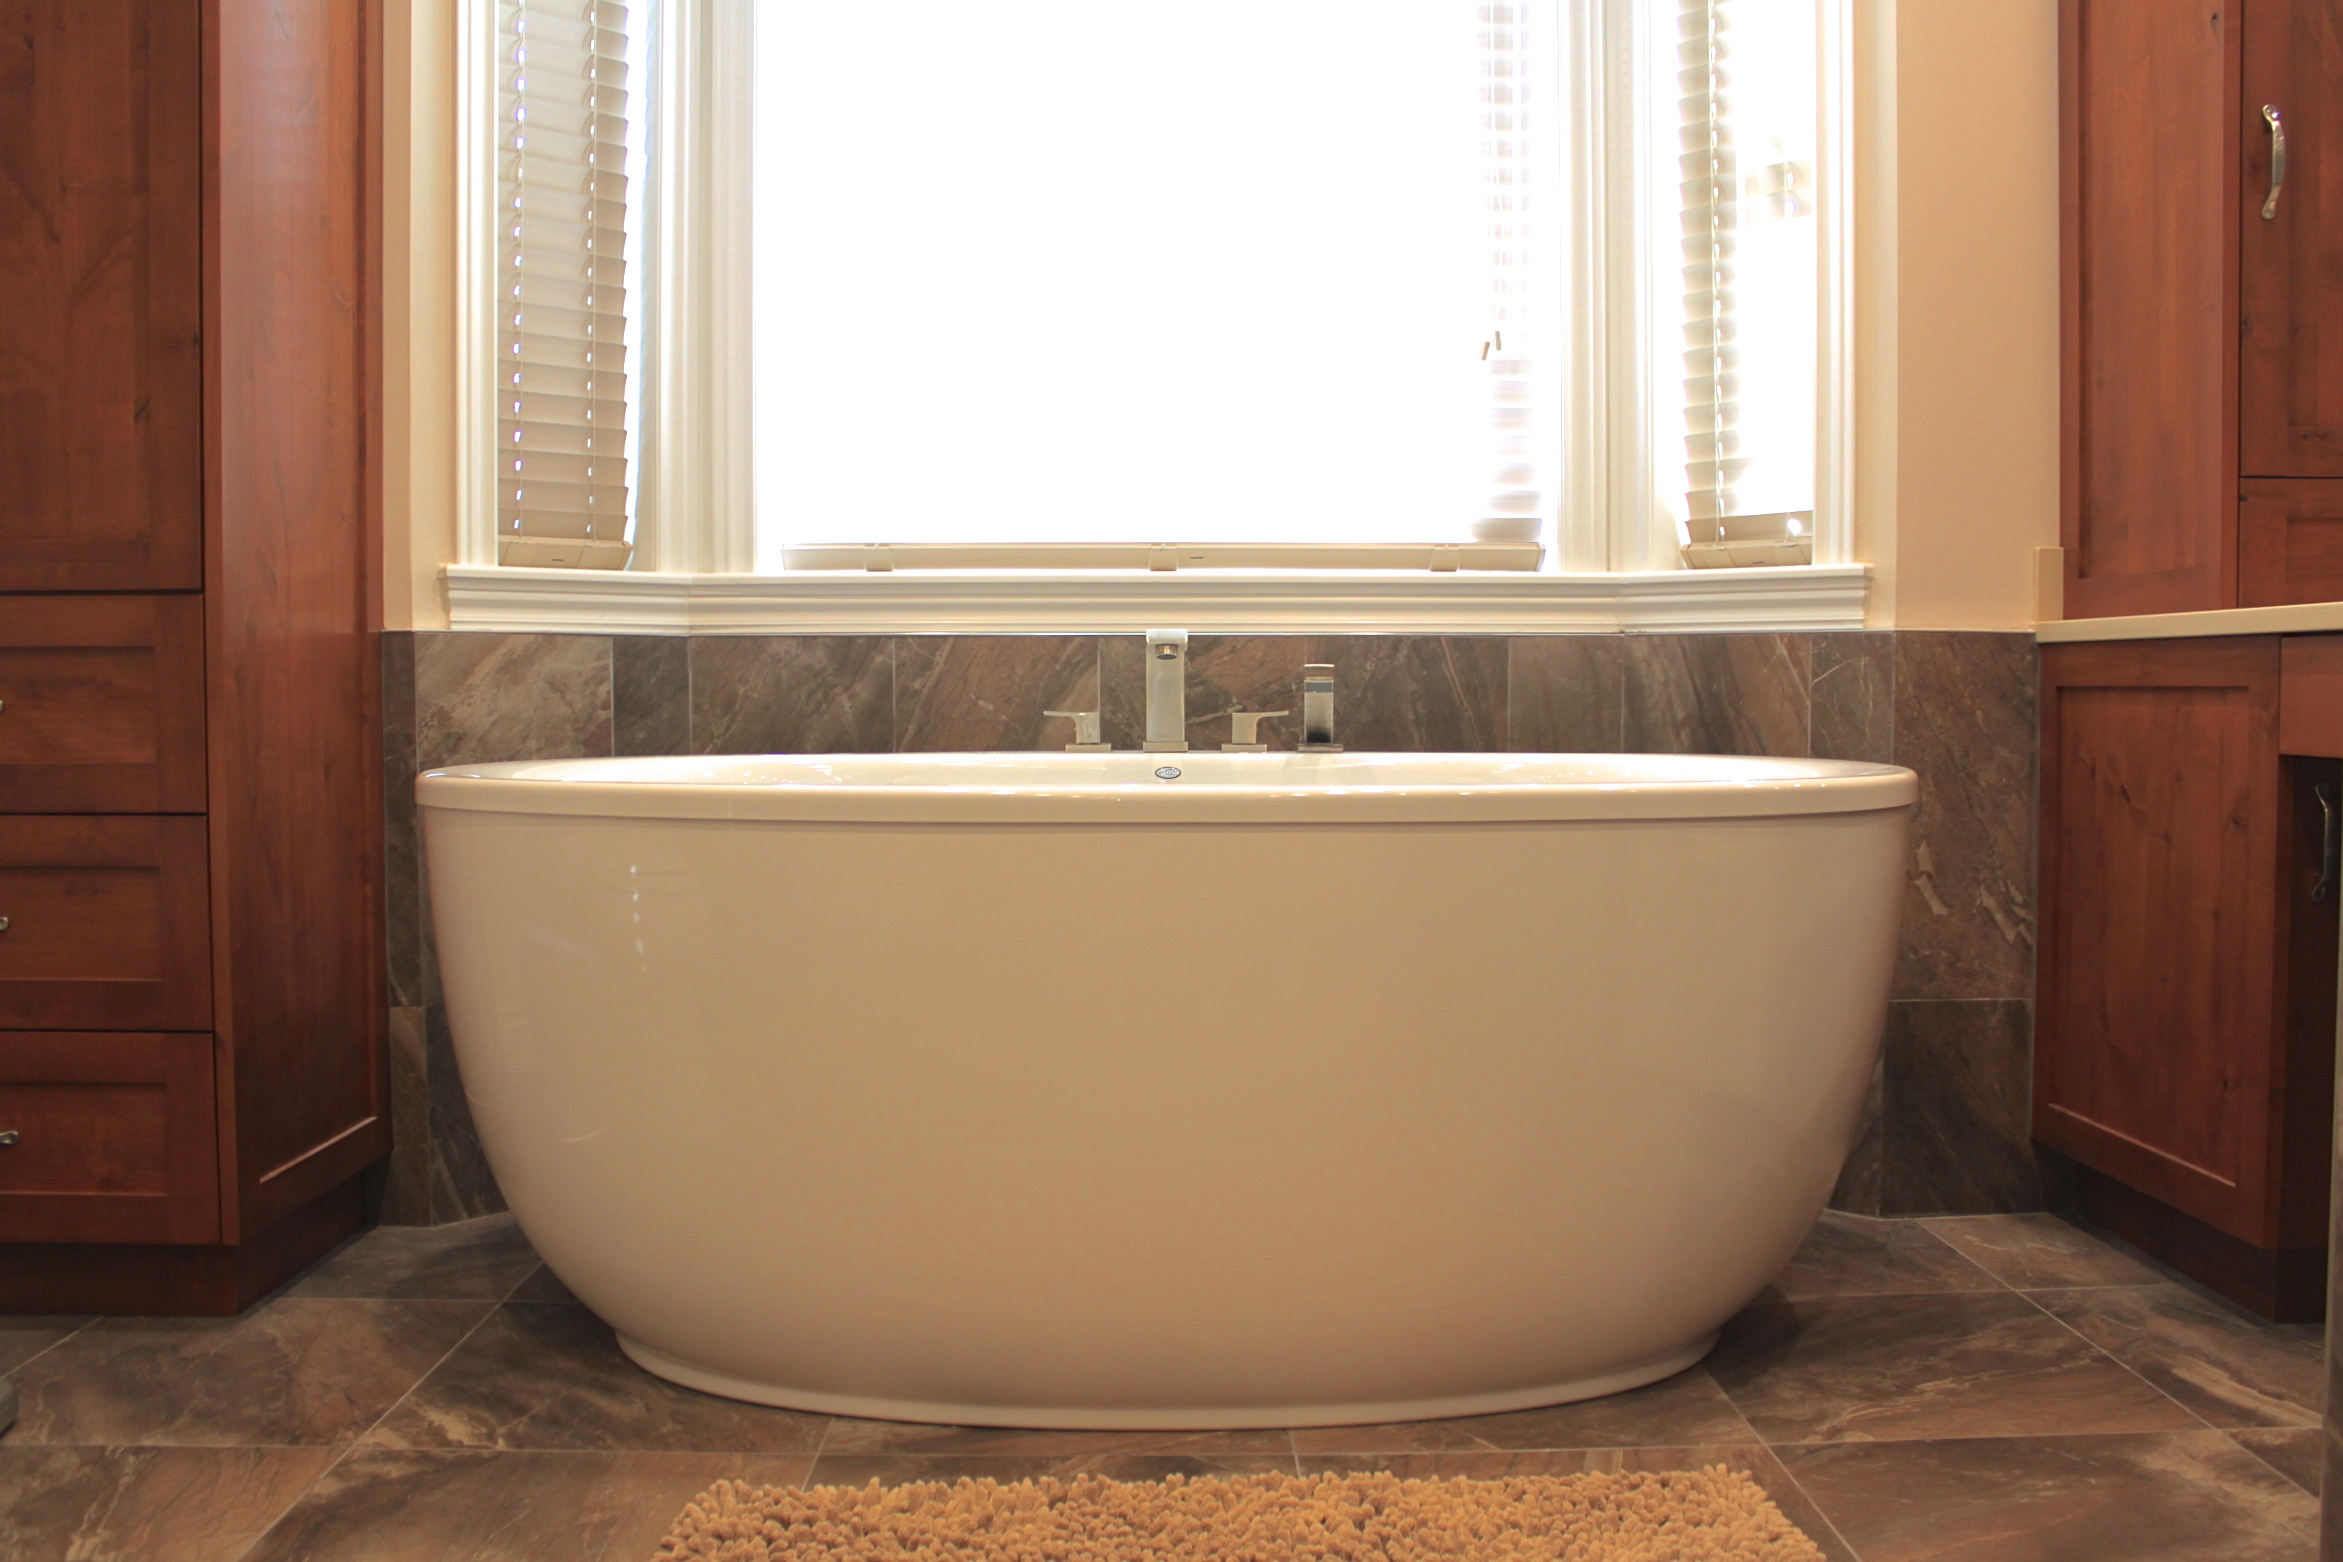 Bathroom Renovations in Langley BC - Novero Homes and Renovations